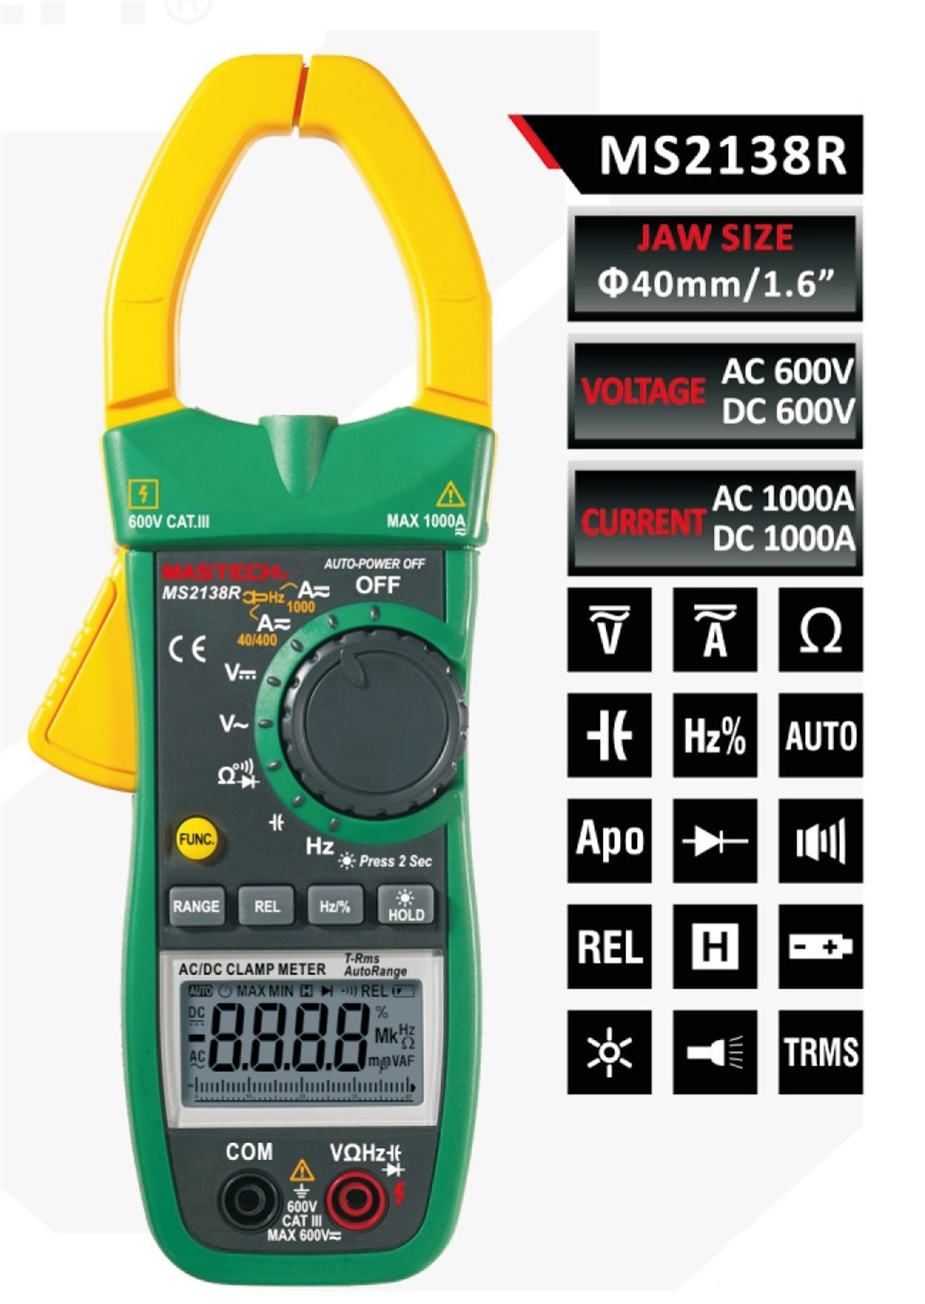 Selling MASTECH MS2138R 4000 Counts Digital AC DC Clamp Meter Multimeter Voltage Current Capacitance Resistance Tester mastech ms2138 digital 1000a ac dc clamp meter multimeter electrical current 4000 counts voltage tester with high performance